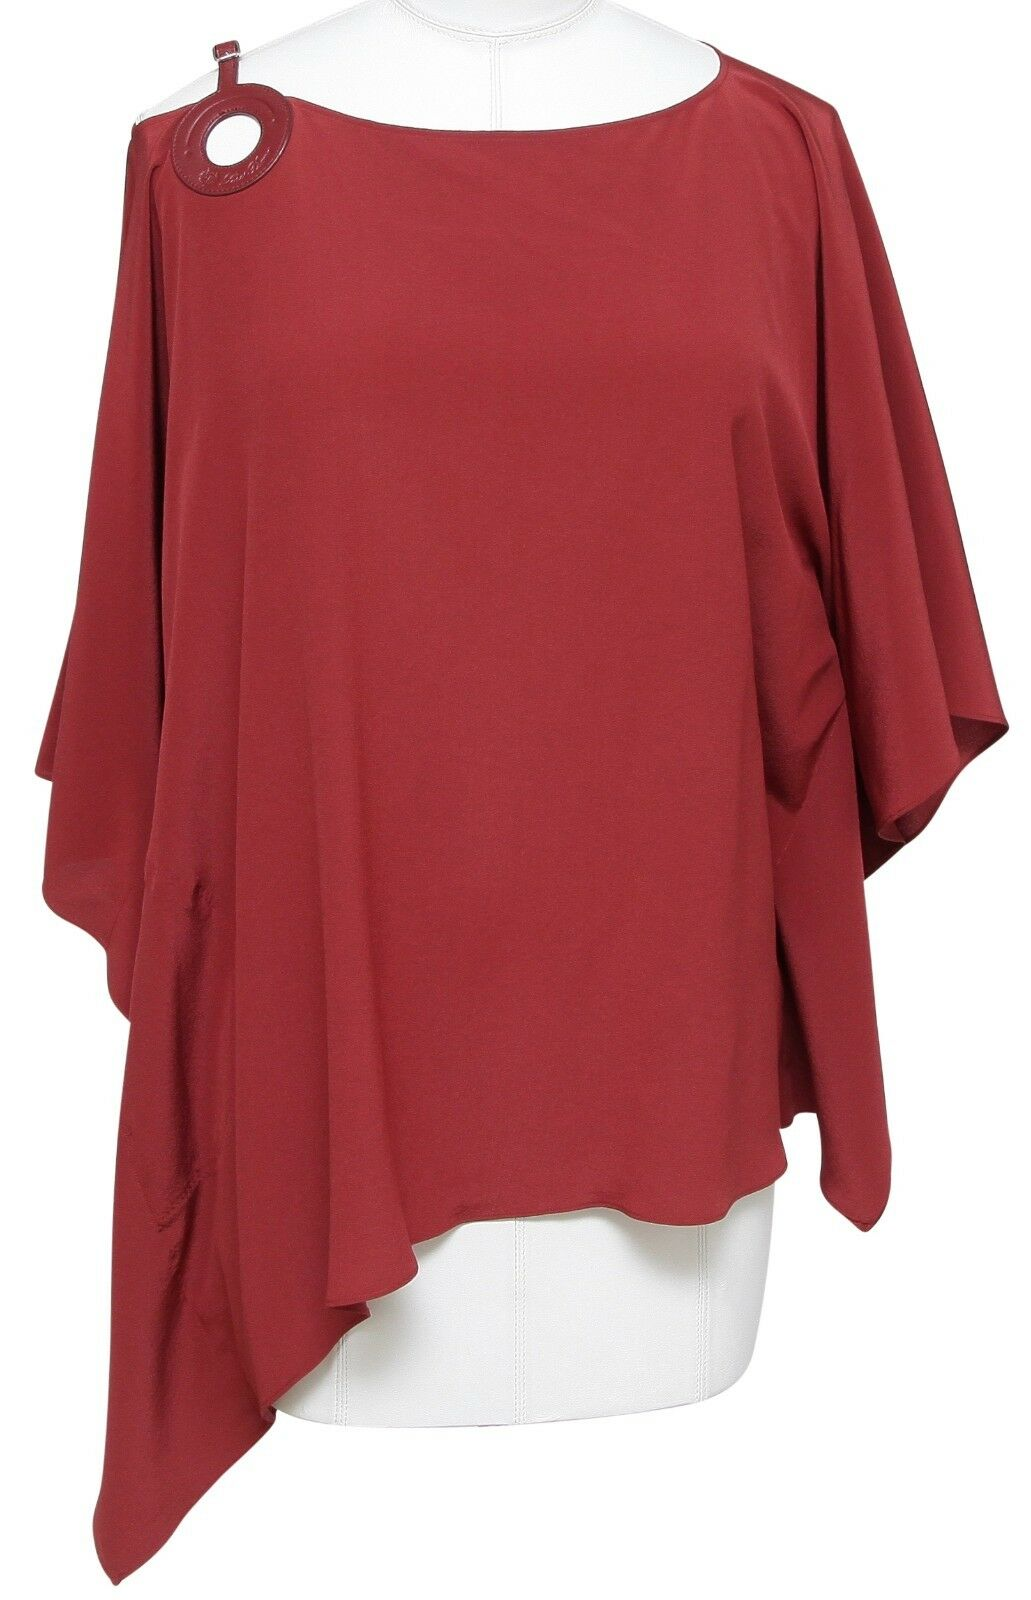 LGold PIANA Silk Blouse Top Shirt Draped Sleeve Rust rot braun Leather Sz M